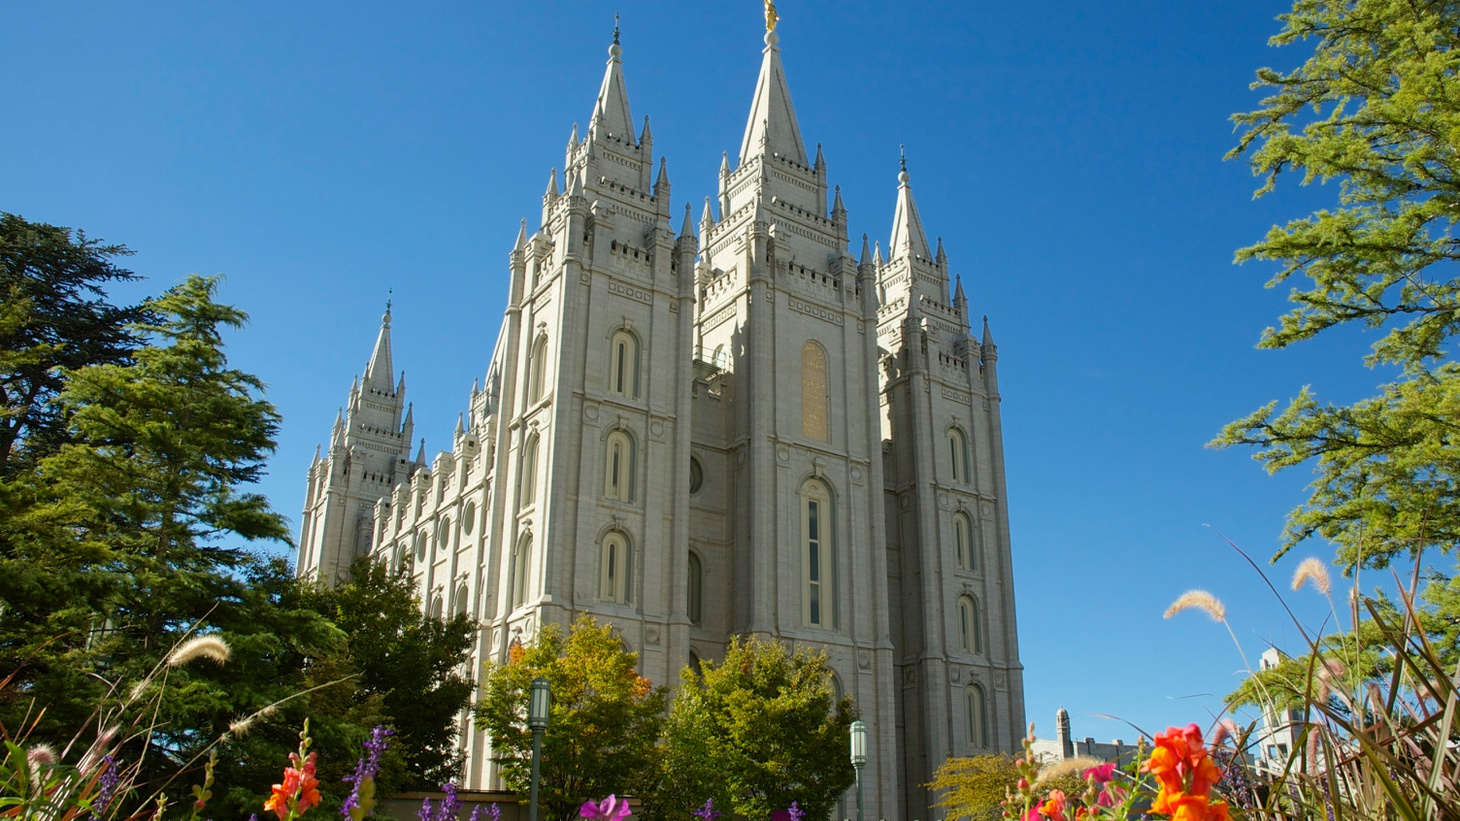 Utah's Salt Lake Temple is the headquarters of the Church of Jesus Christ of Latter-day Saints.